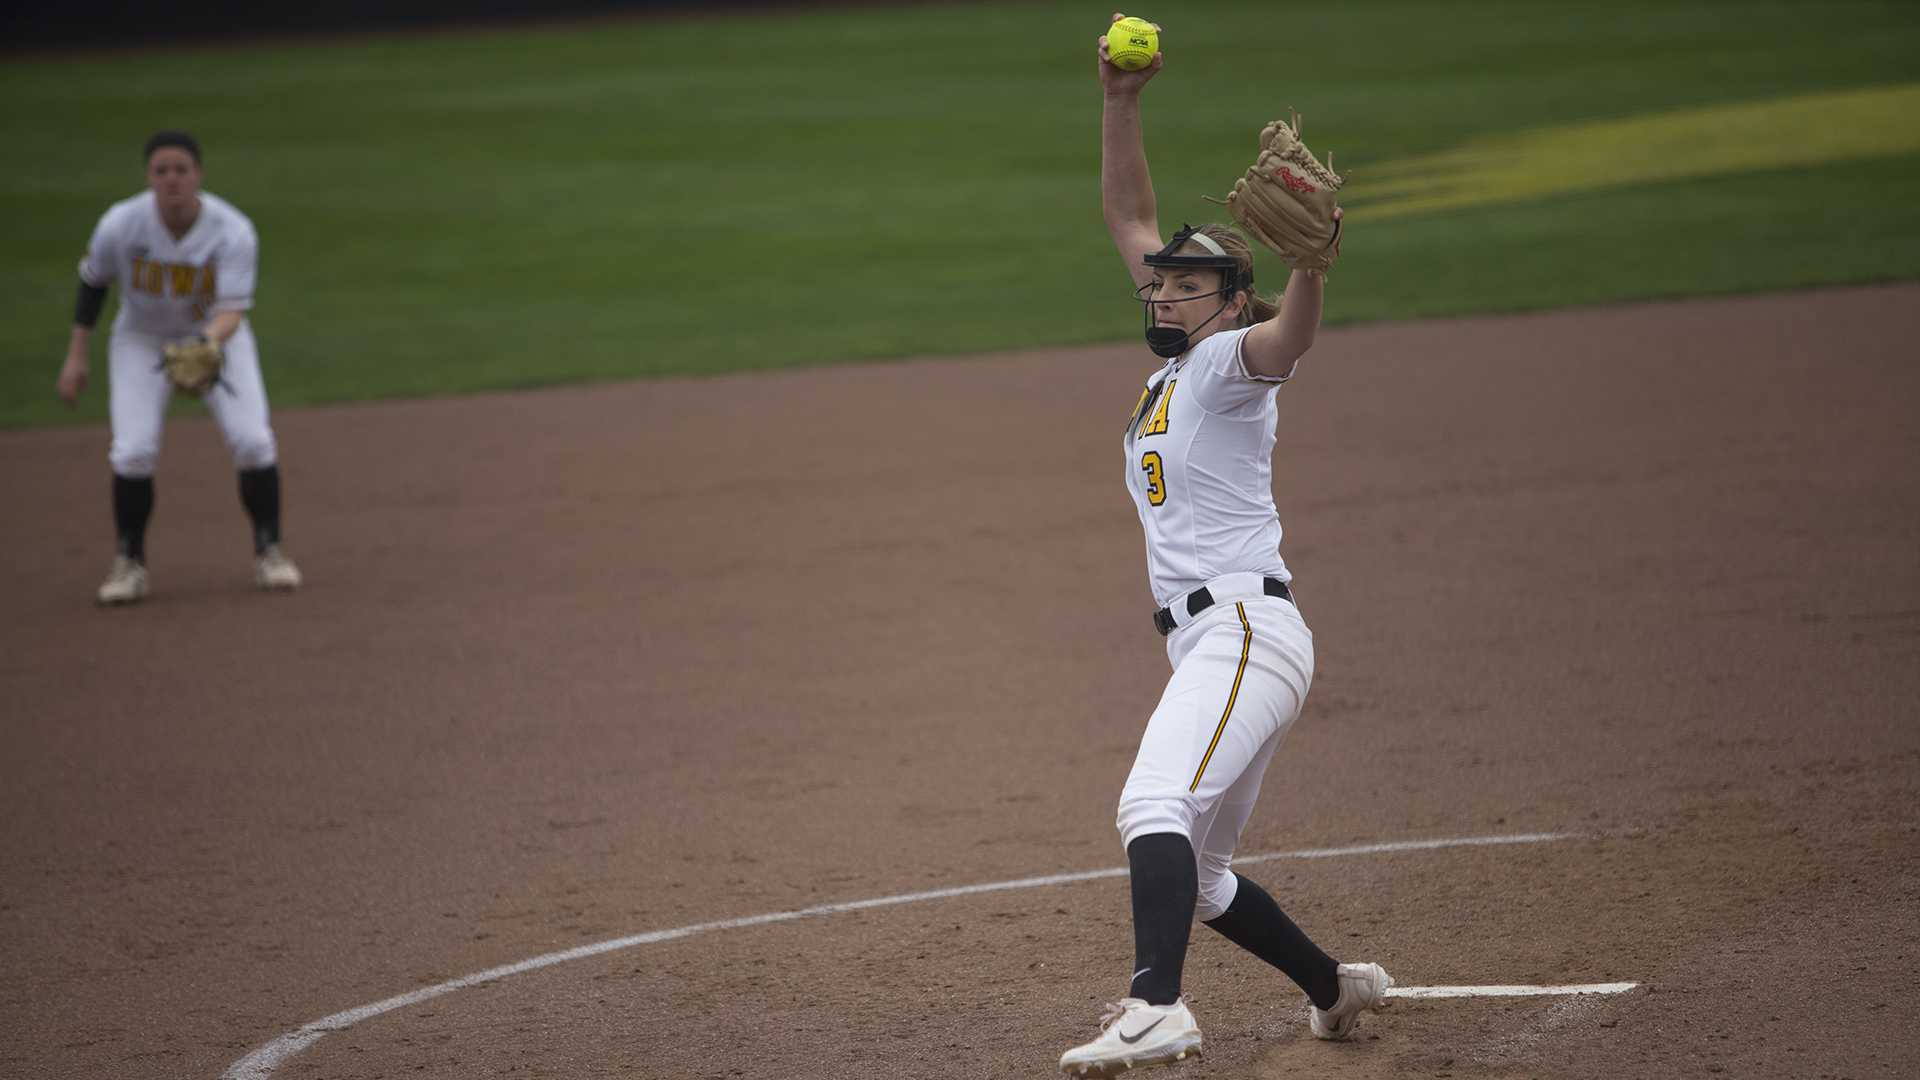 Iowa pitcher Allison Doocy throws a pitch during the first game of a double header against Nebraska at Bob Pearl on Wednesday, April 12, 2017. (File Photo/The Daily Iowan)